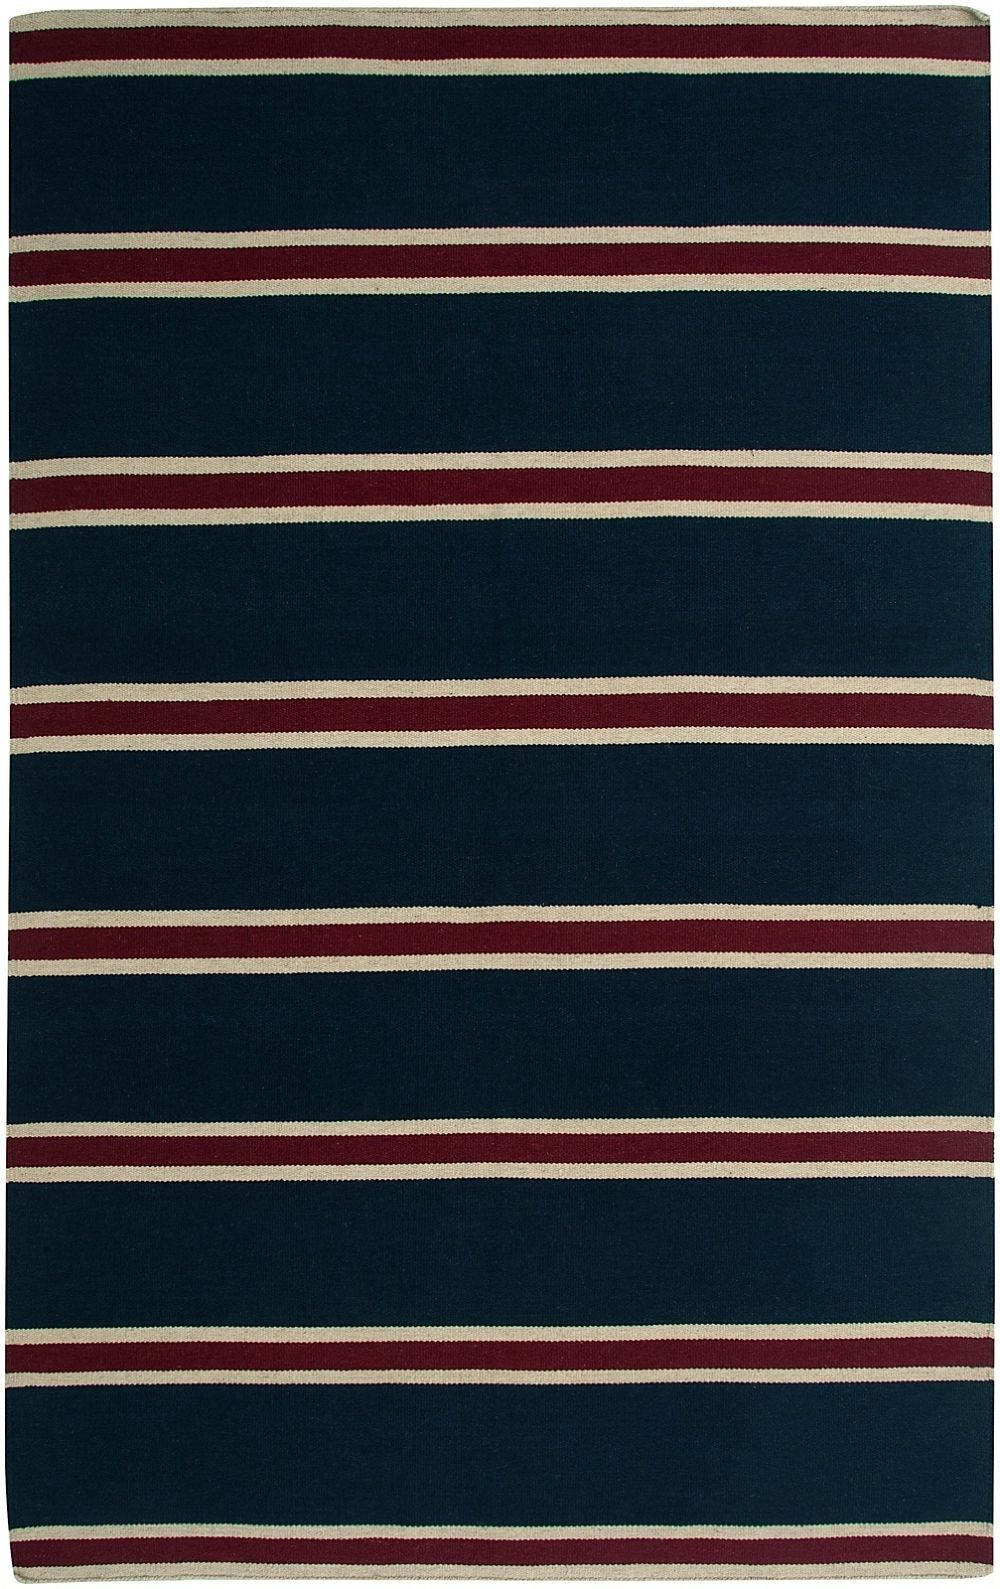 rizzy rugs swing solid/striped area rug collection